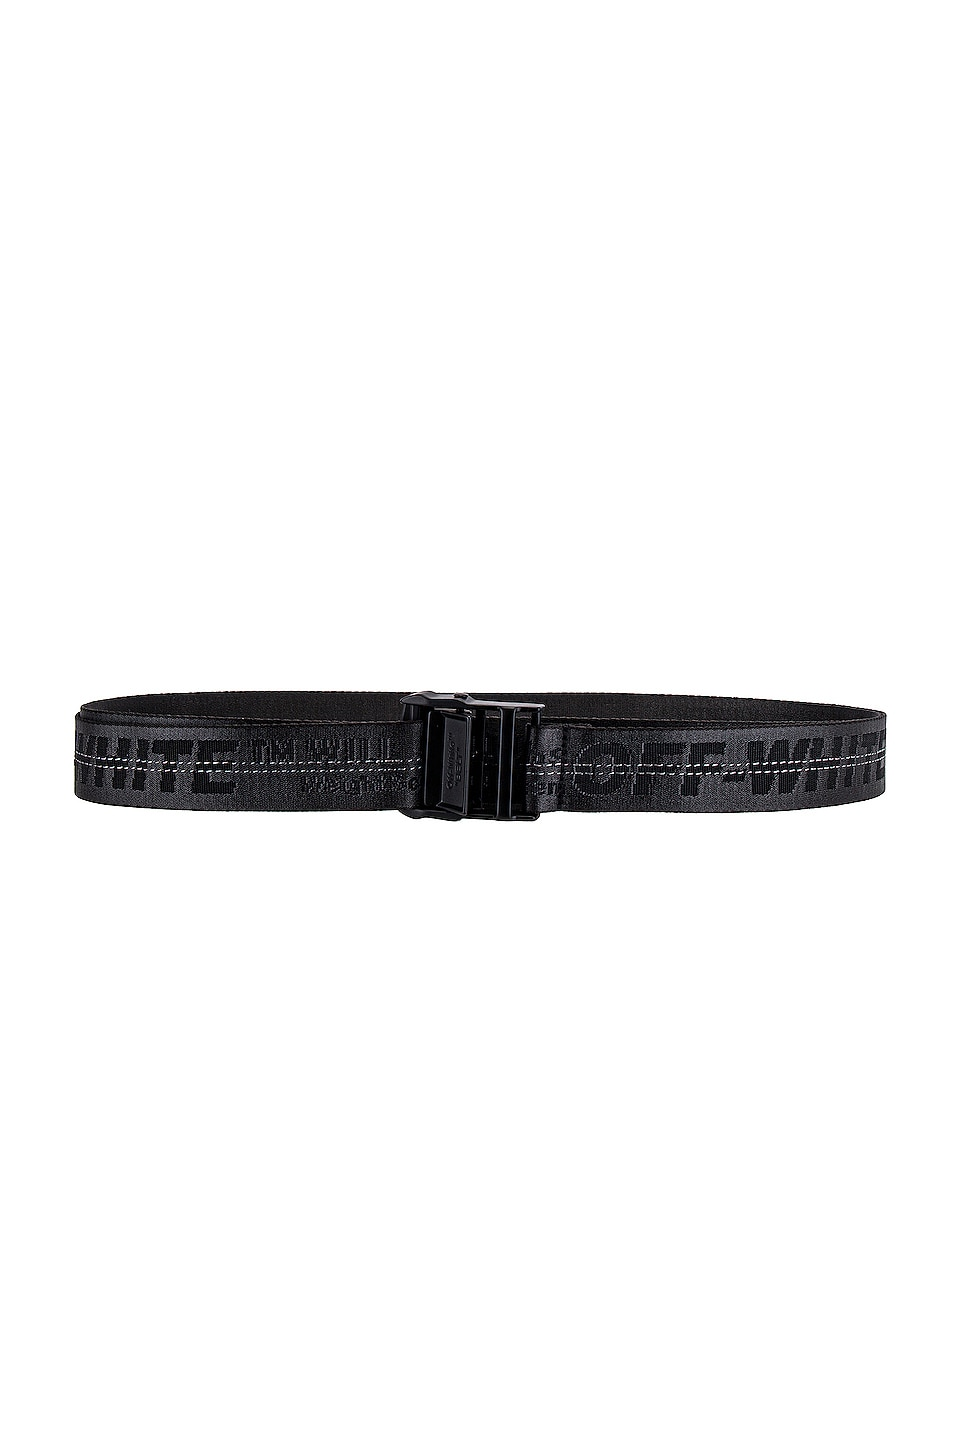 OFF-WHITE Industrial Belt in Black